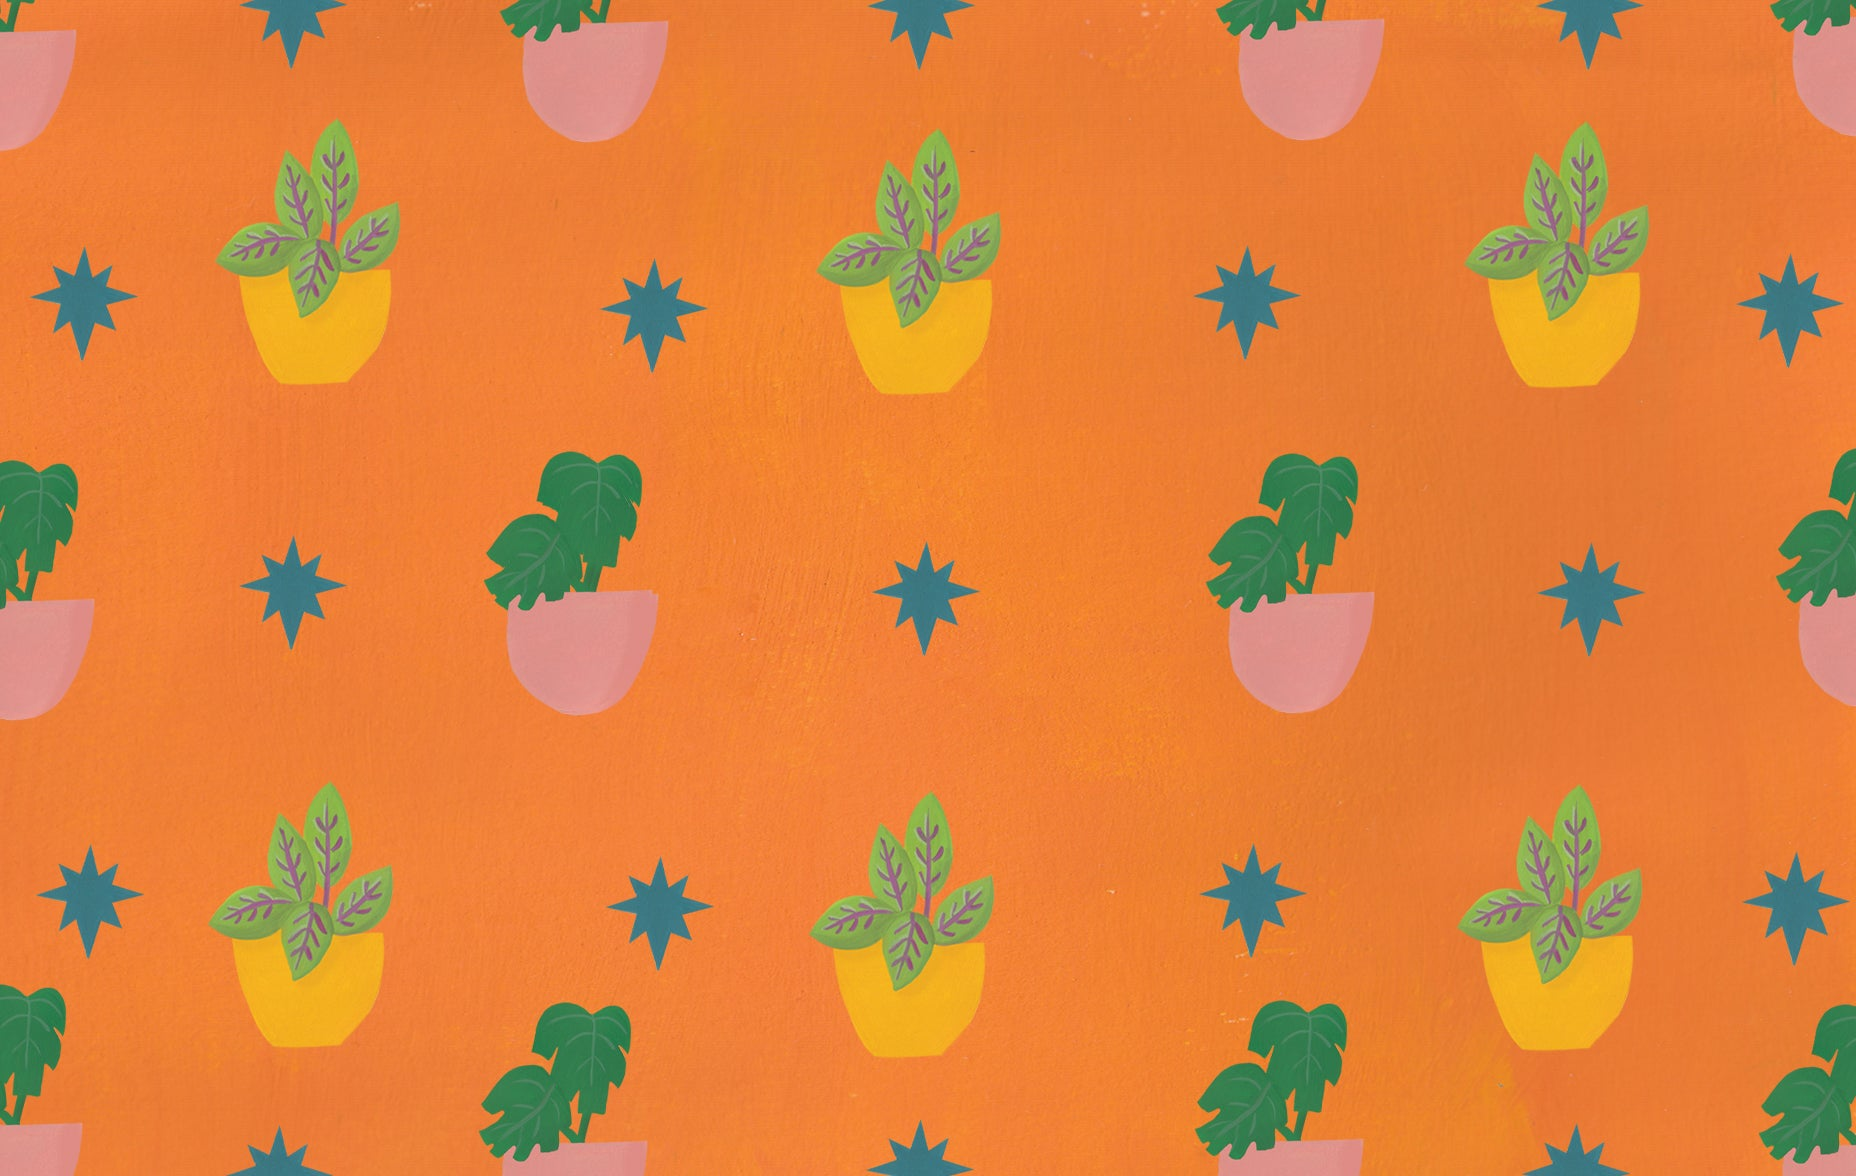 Bright and cheerful illustrated houseplants, free wallpaper for desktop | Raspberry Blossom